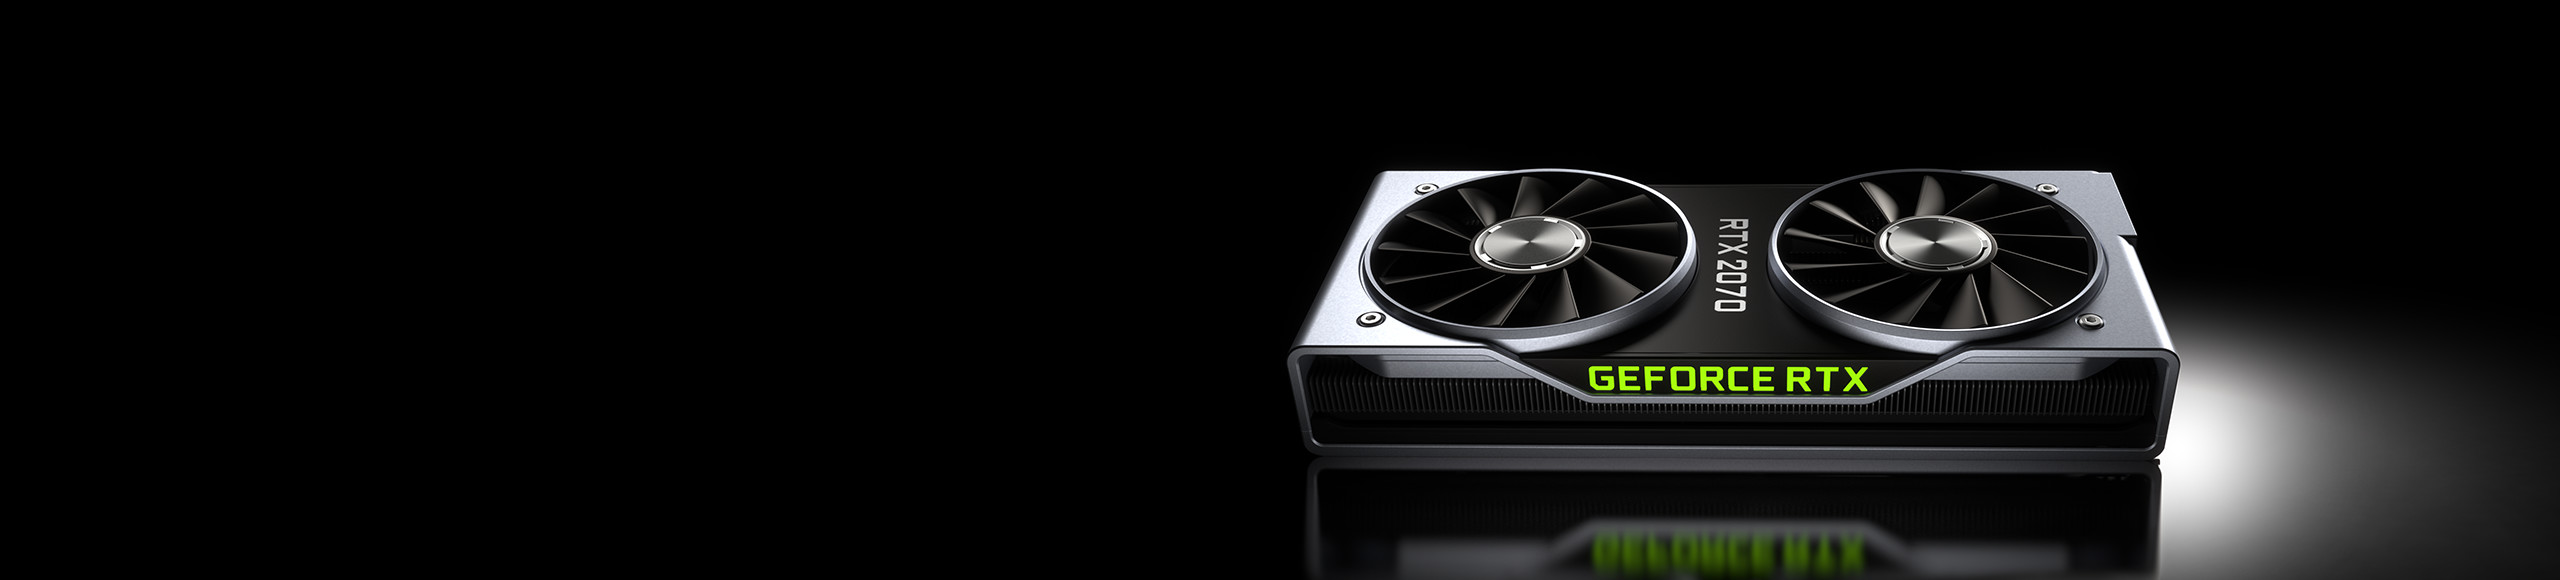 GeForce RTX 2070 Graphics Cards | NVIDIA